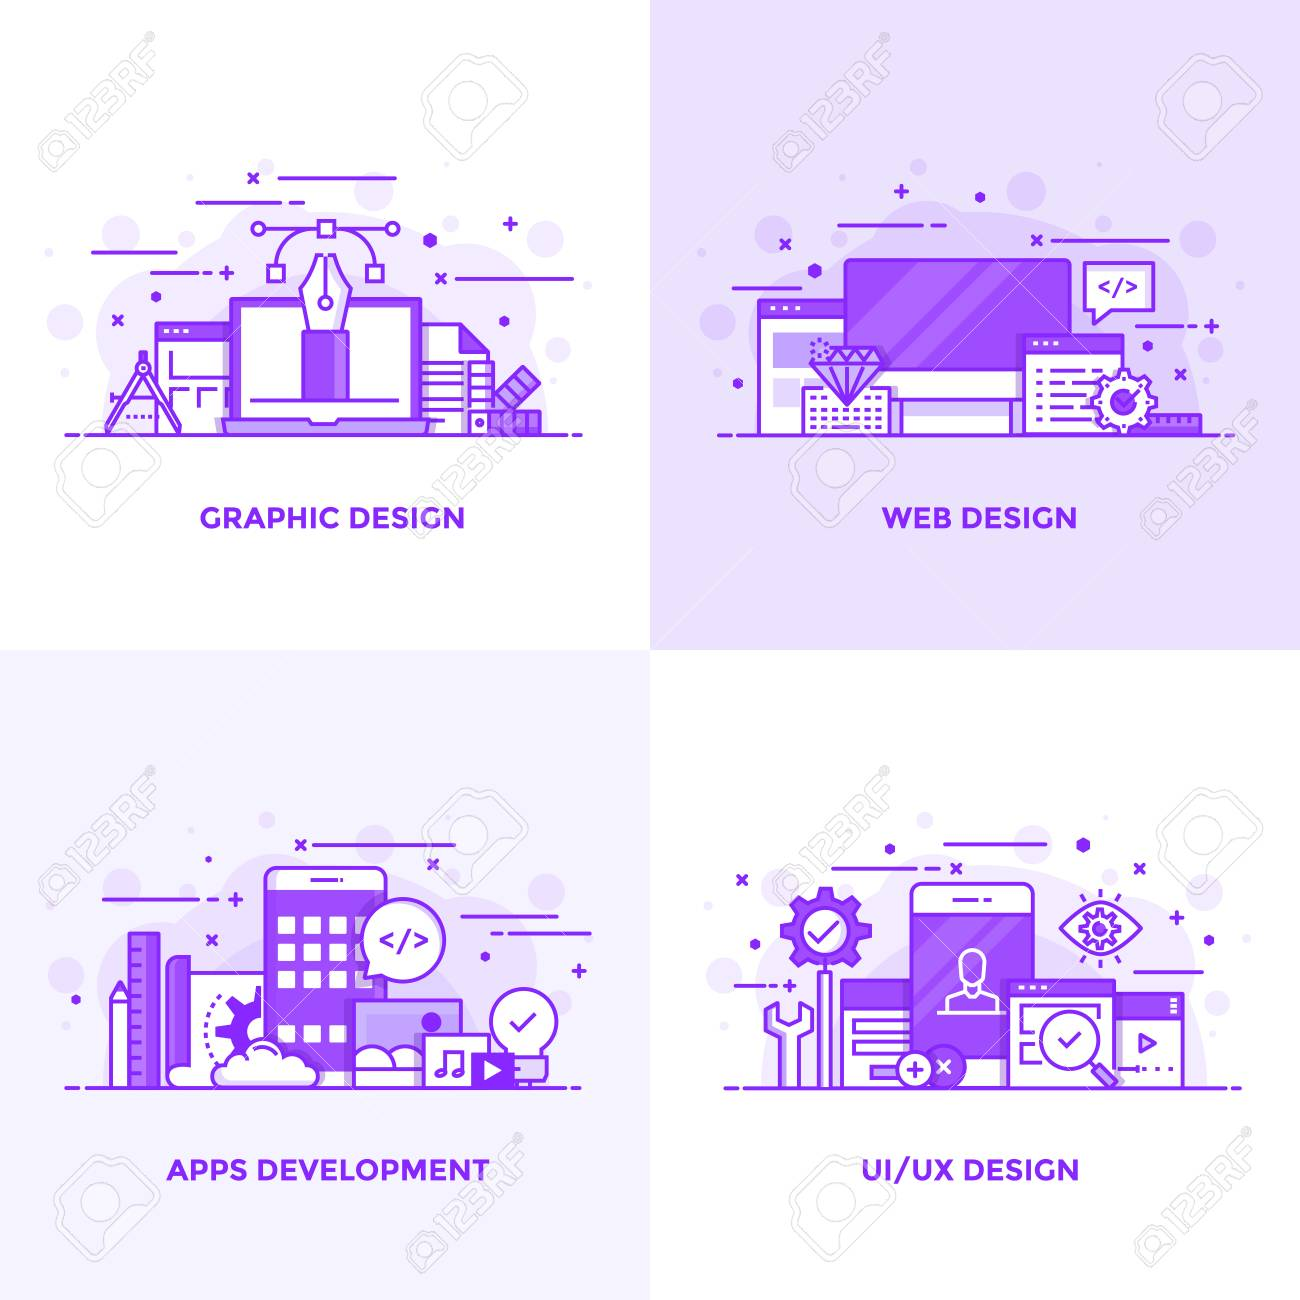 Modern Flat Purple color line designed concepts icons for Graphic